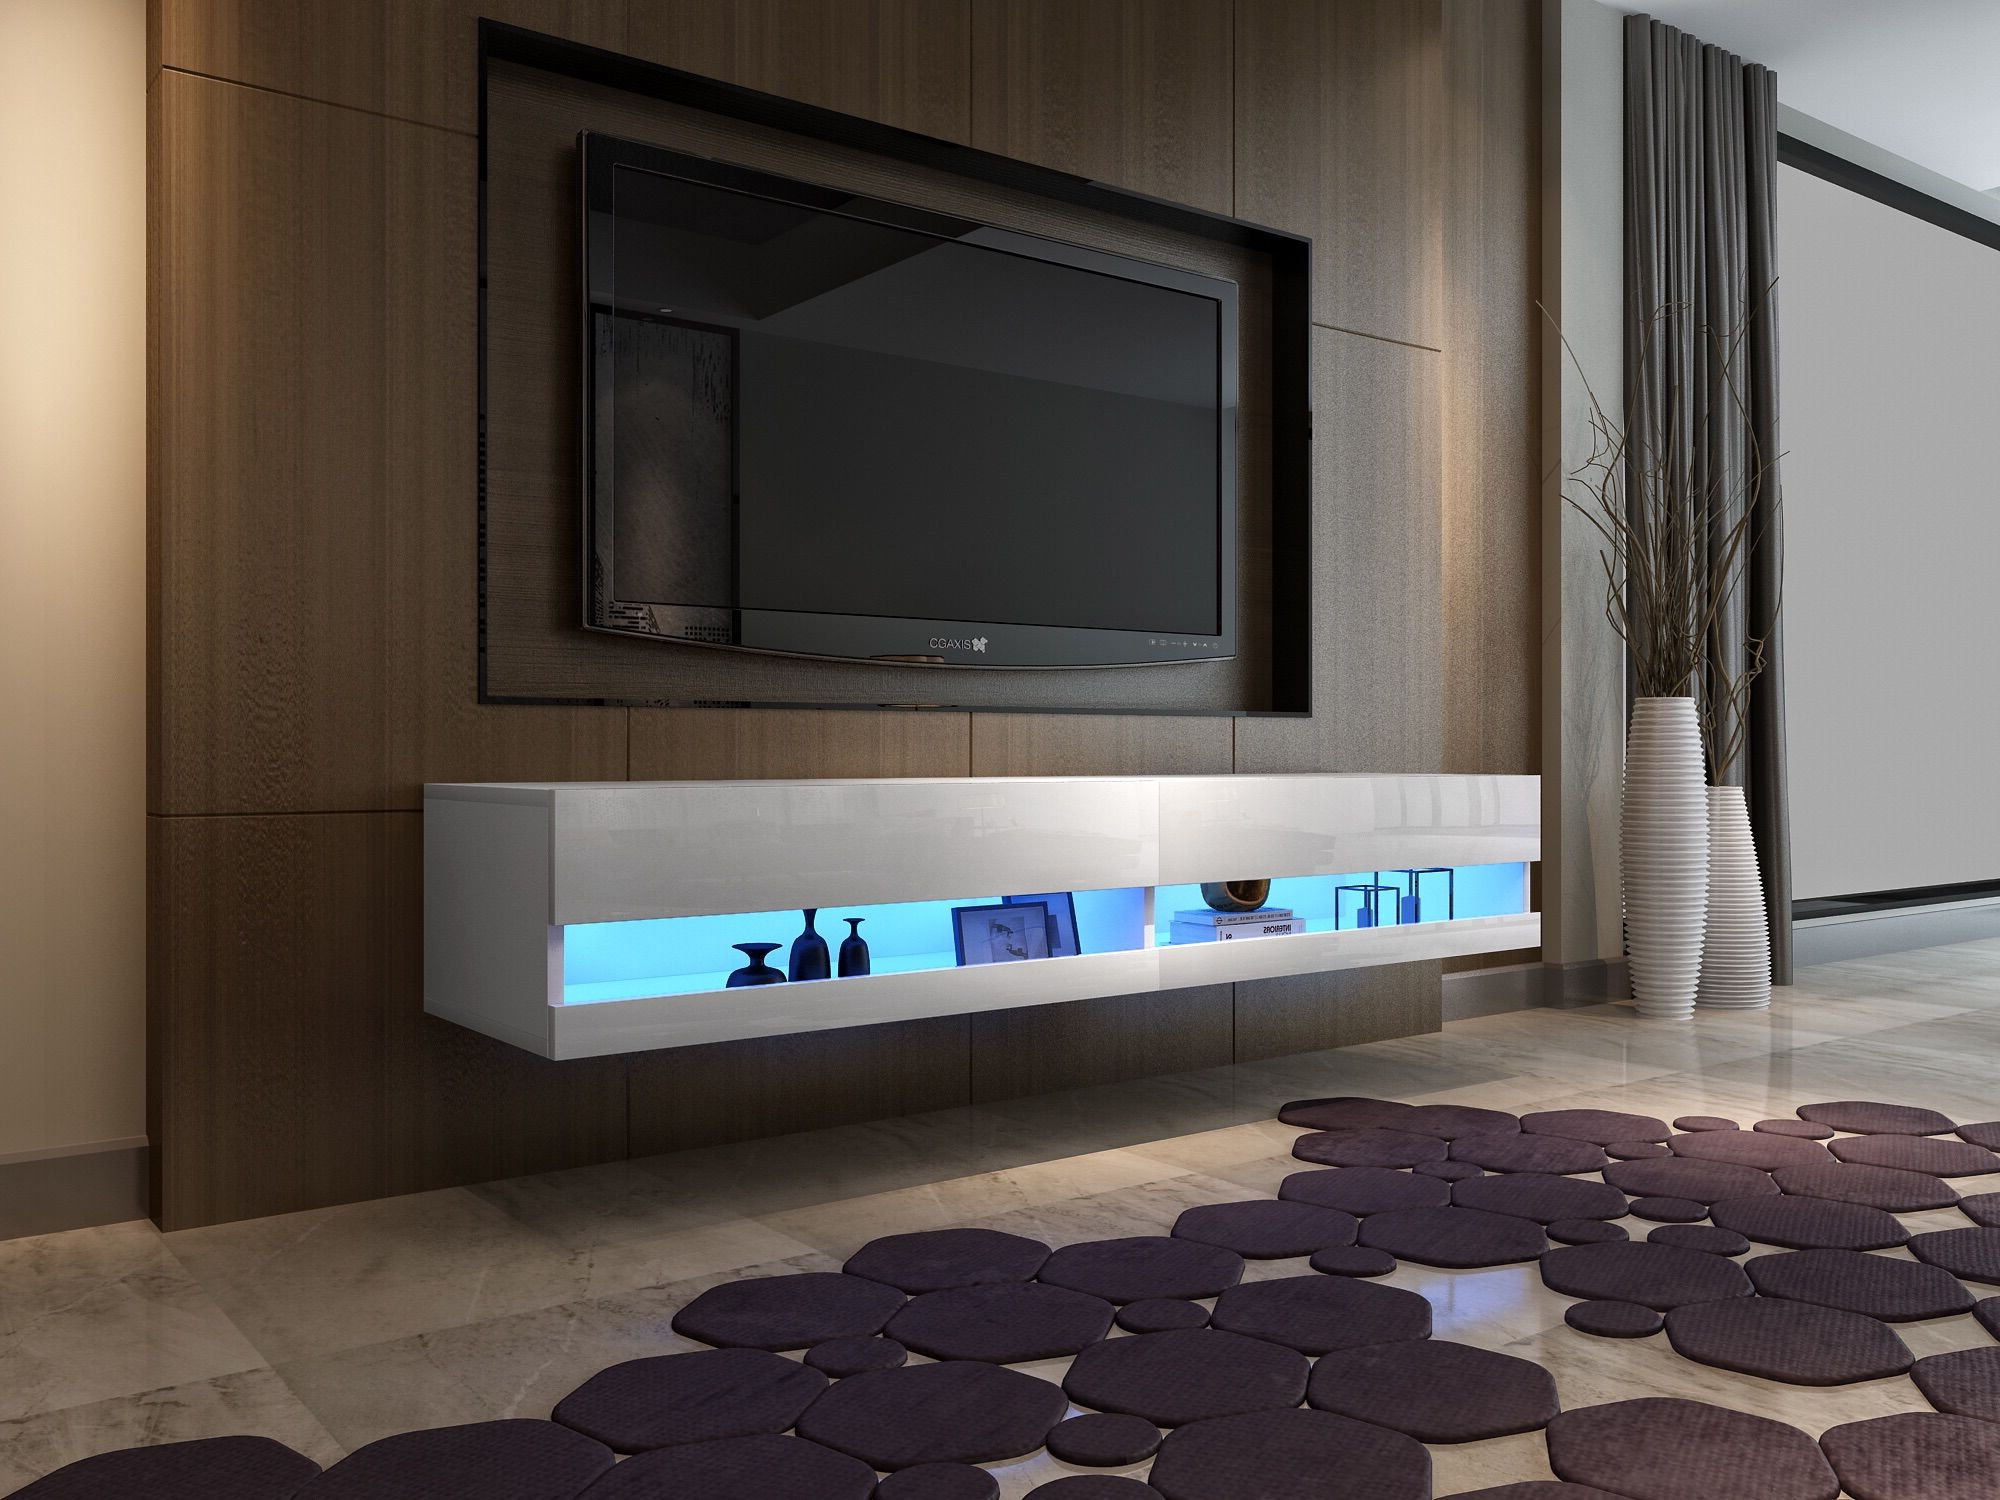 Tv Stand Cabinet 180cm High Gloss Led Lights Floating Wall For Galicia 180cm Led Wide Wall Tv Unit Stands (View 16 of 20)